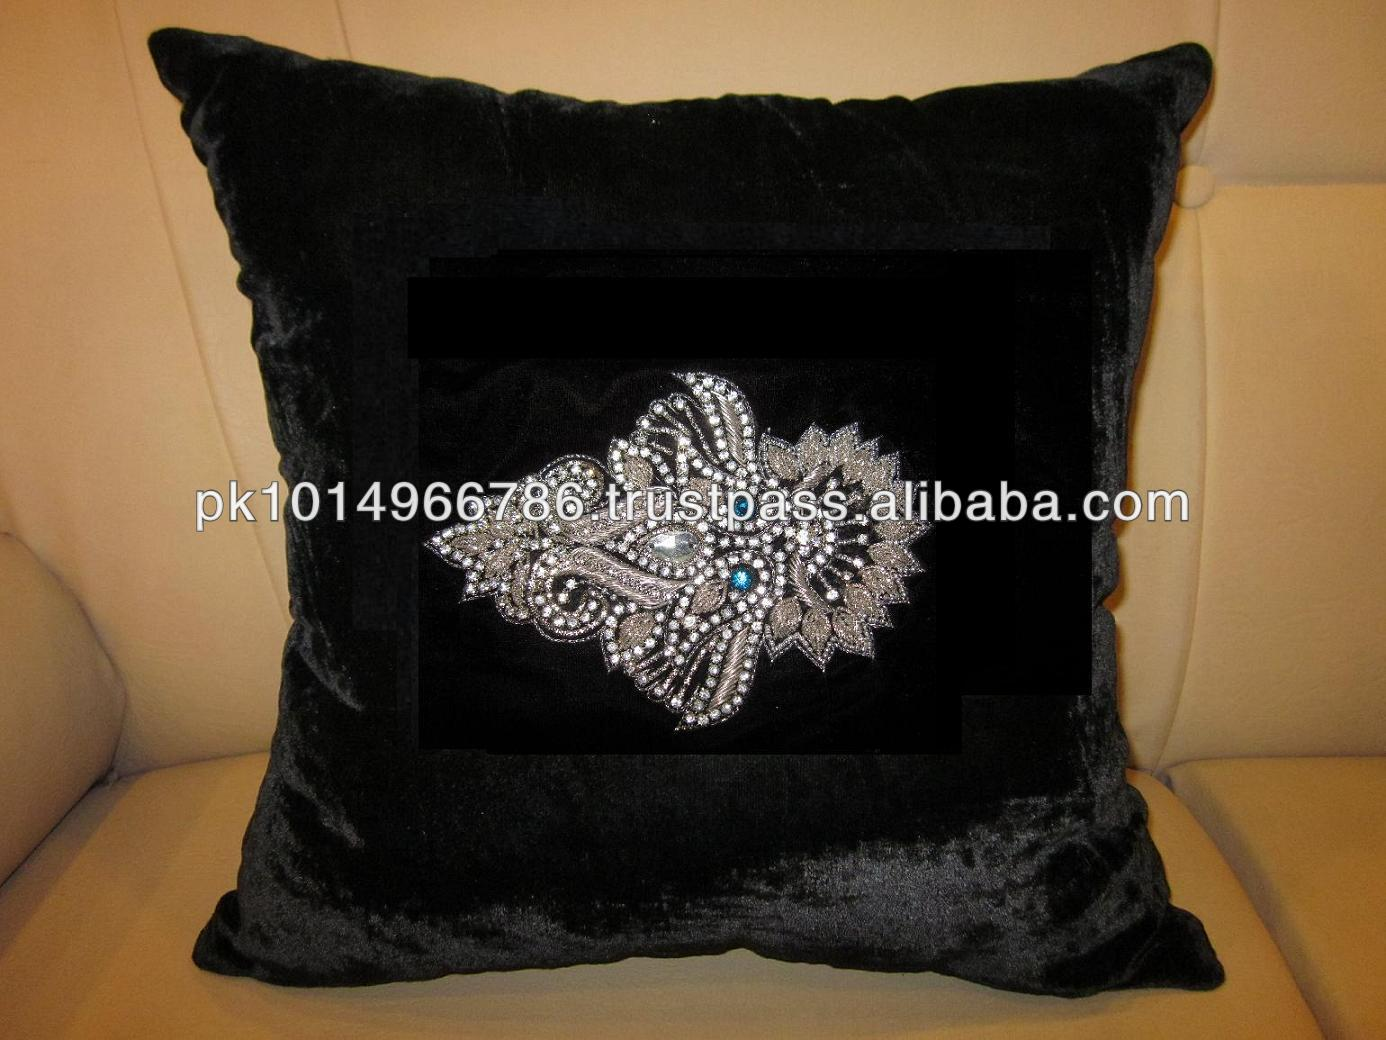 Cushion Cover Handmade Embroidered Sequins Beaded New